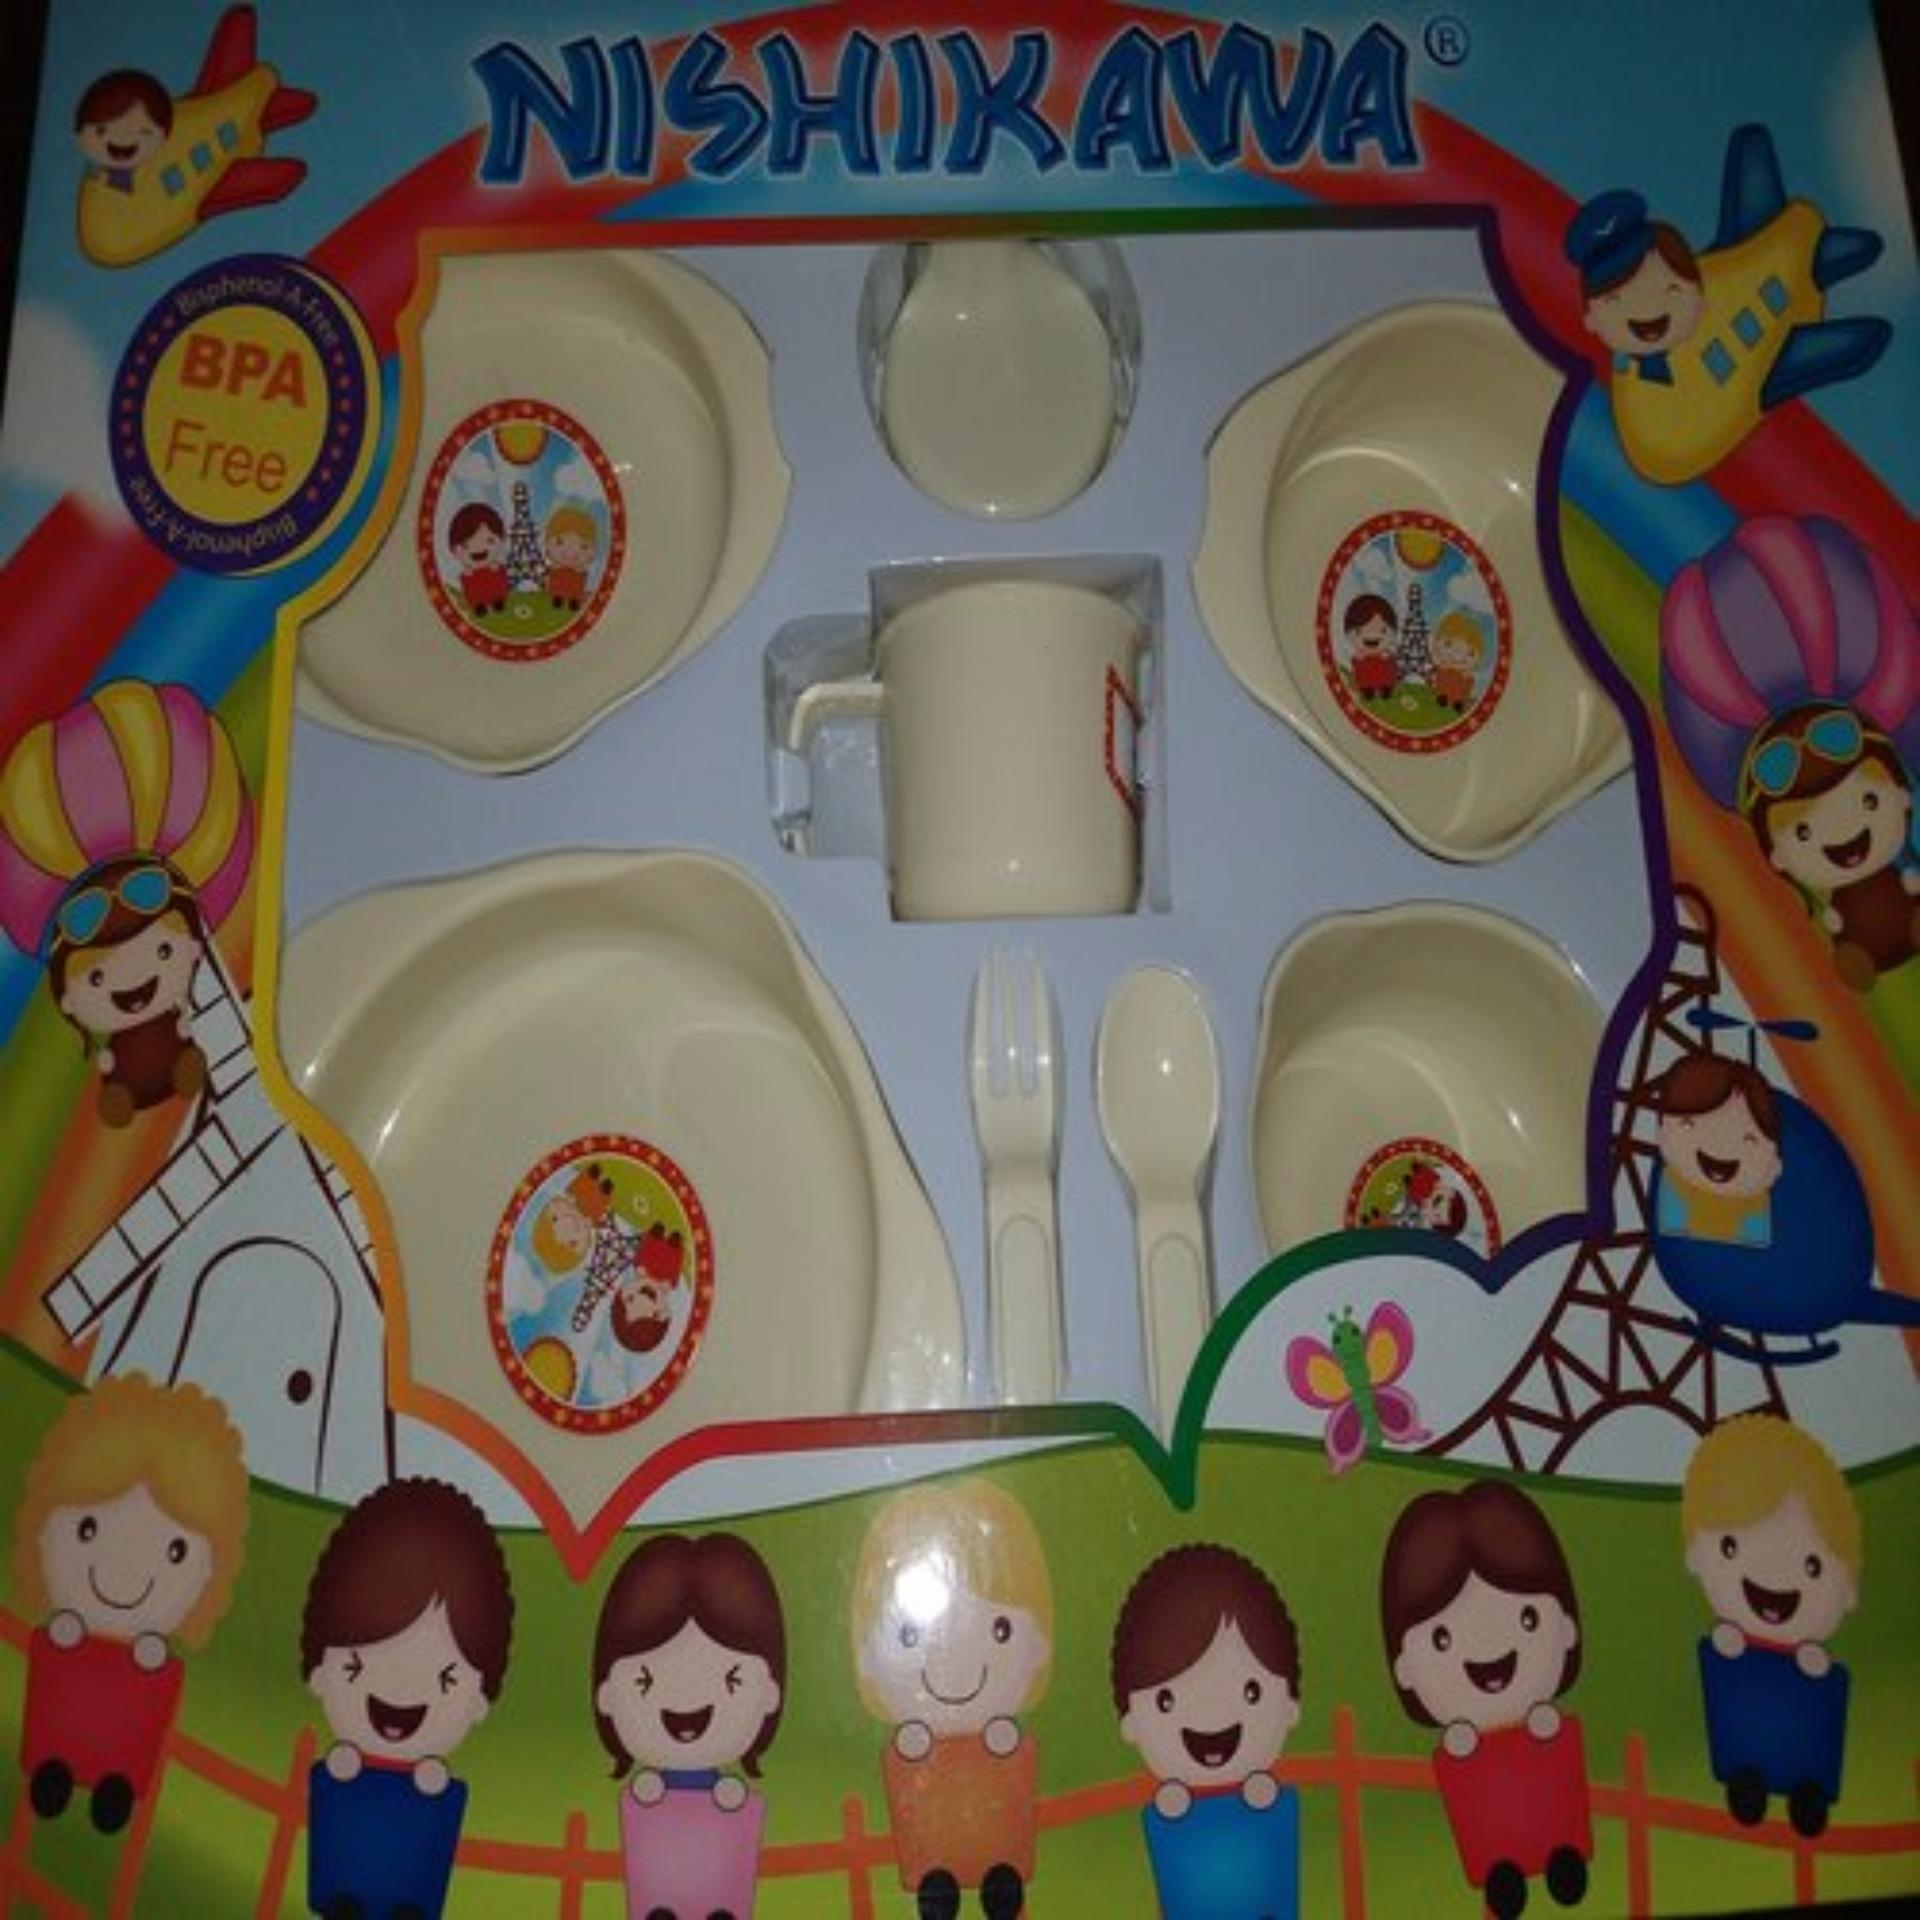 Buy Sell Cheapest Nishikawa Feeding Set Best Quality Product Deals Tempat Makan Kecil Ns 8407